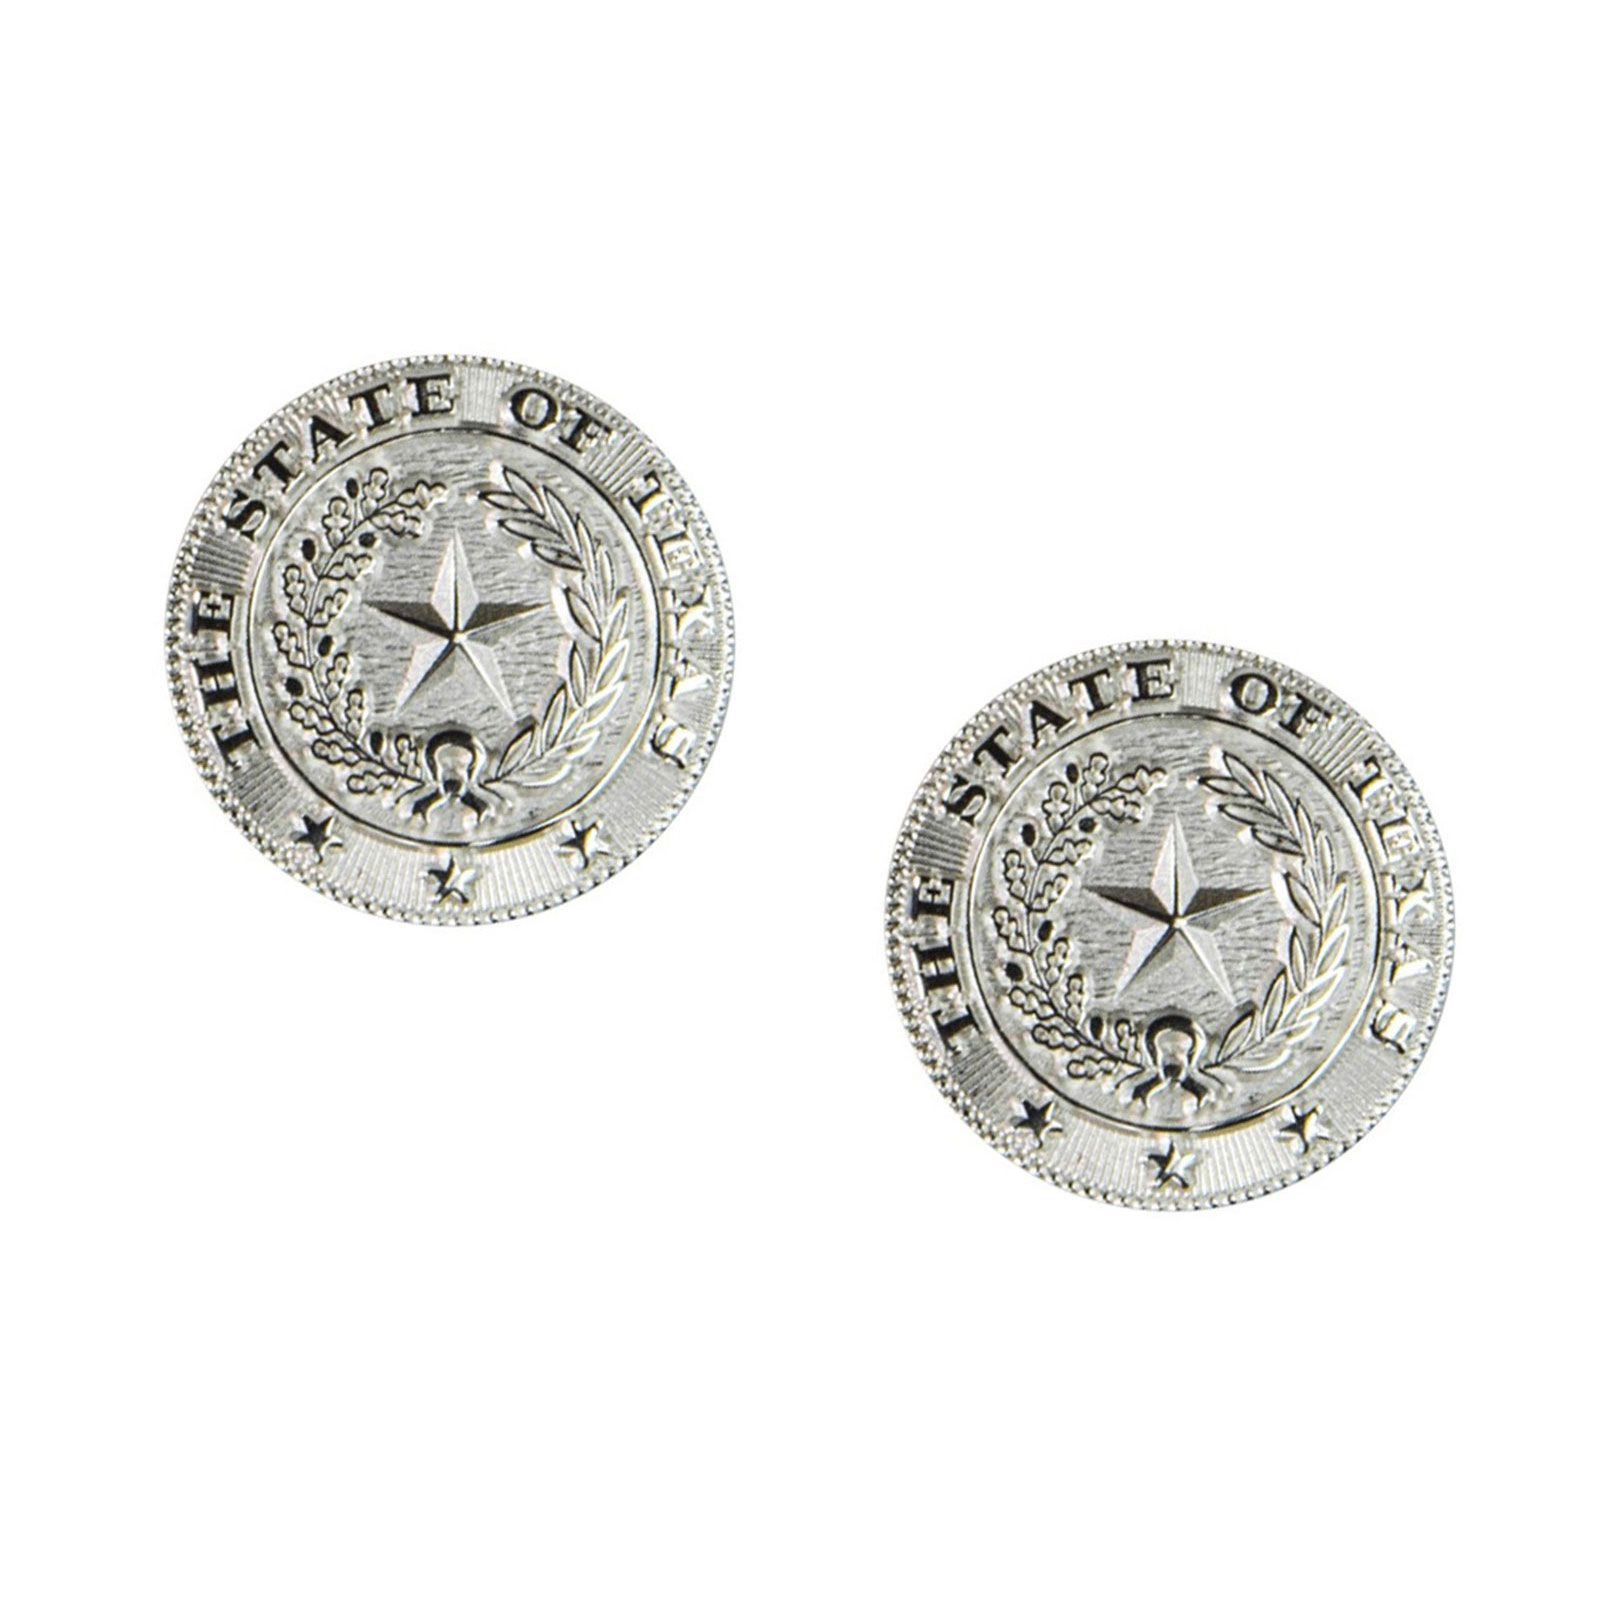 Texas State Seal Silver-Plated Earrings